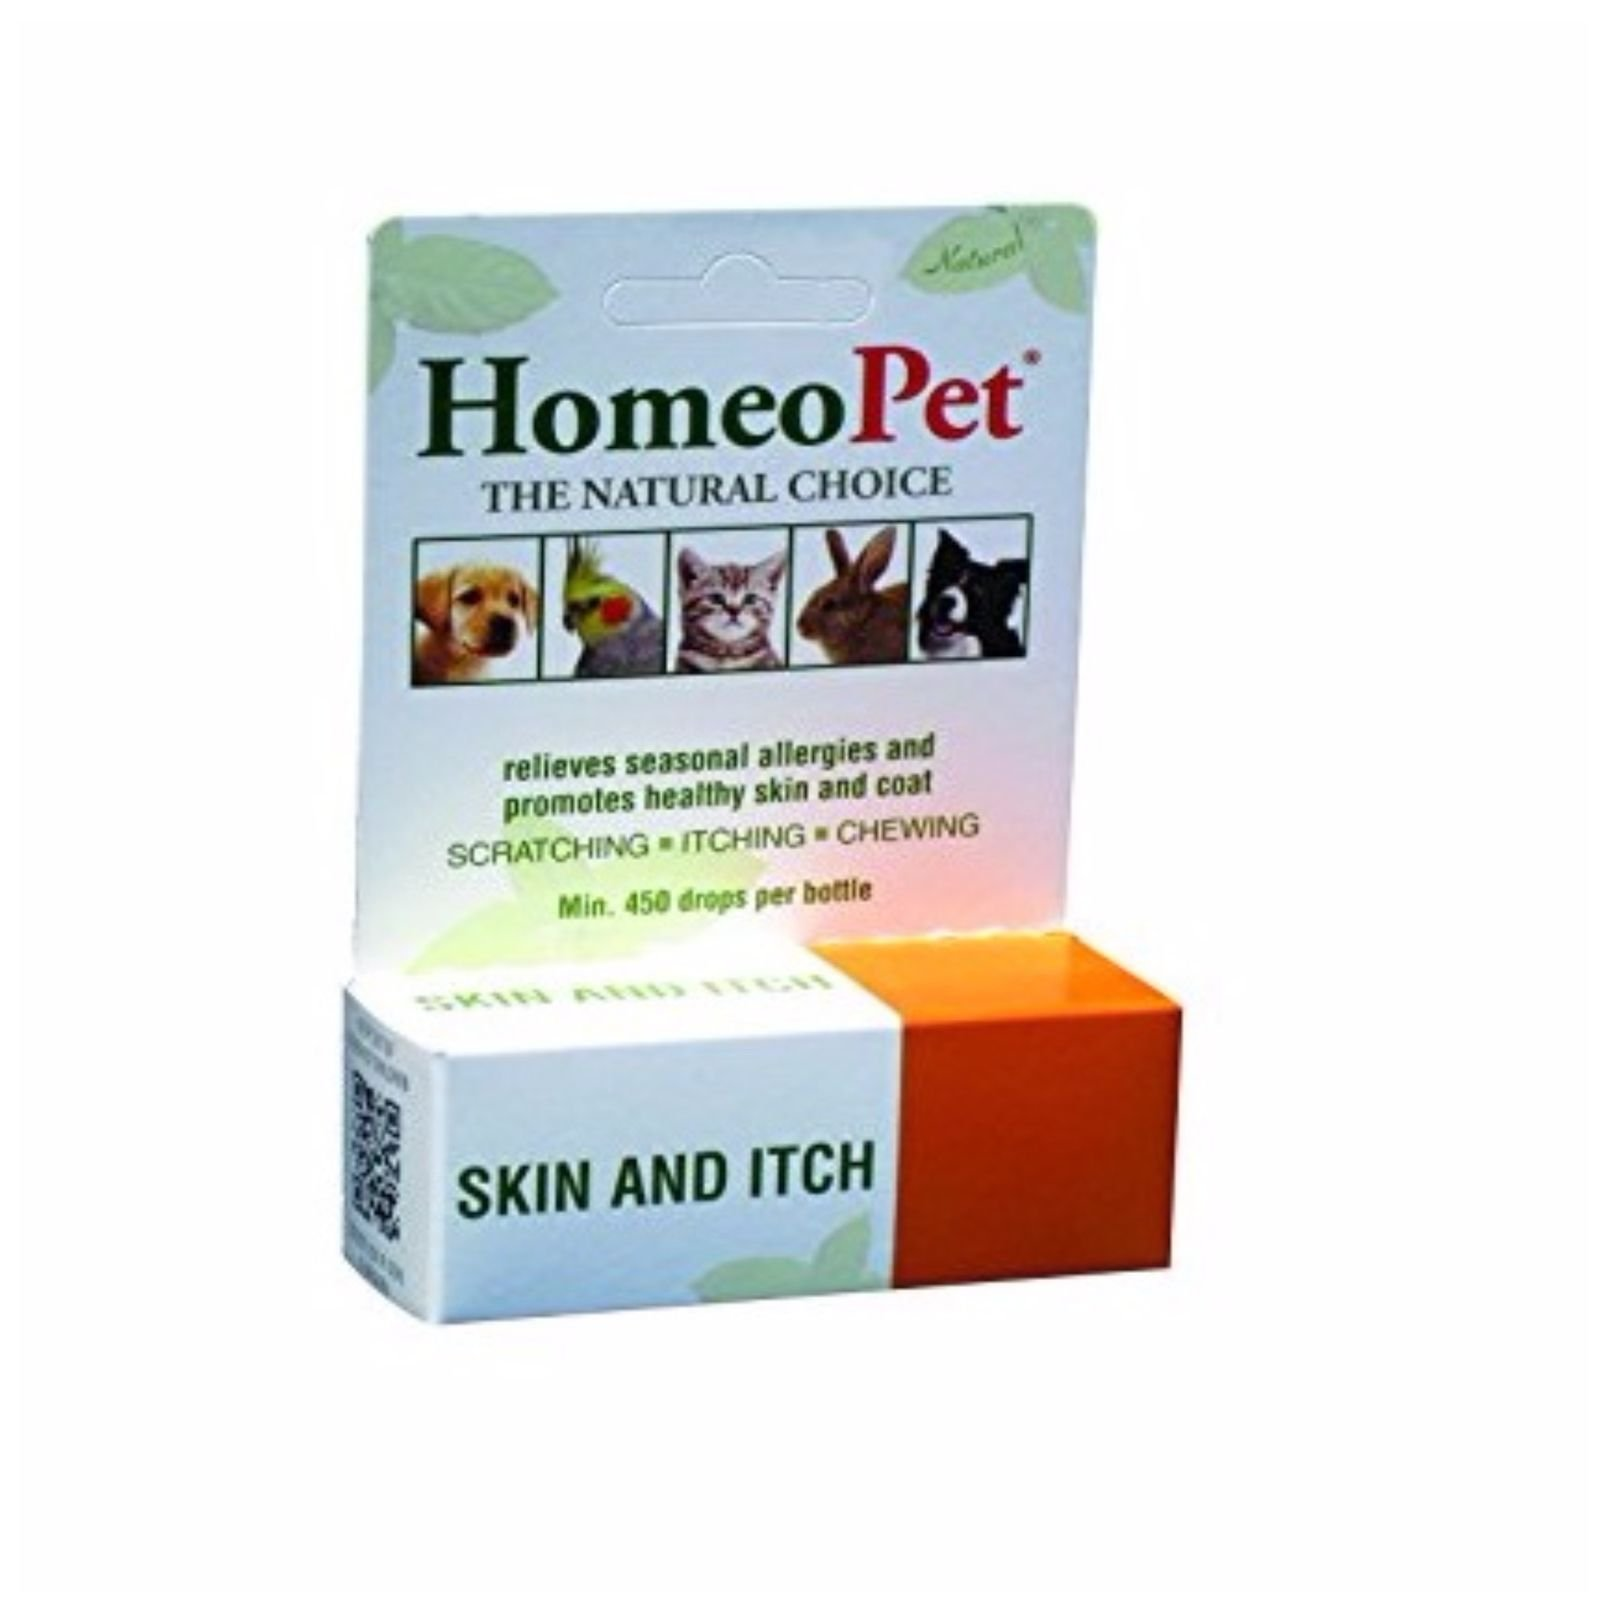 HomeoPet Skin and Itch (15 ml) Homeopathic Remedy for Dogs Cats and Birds